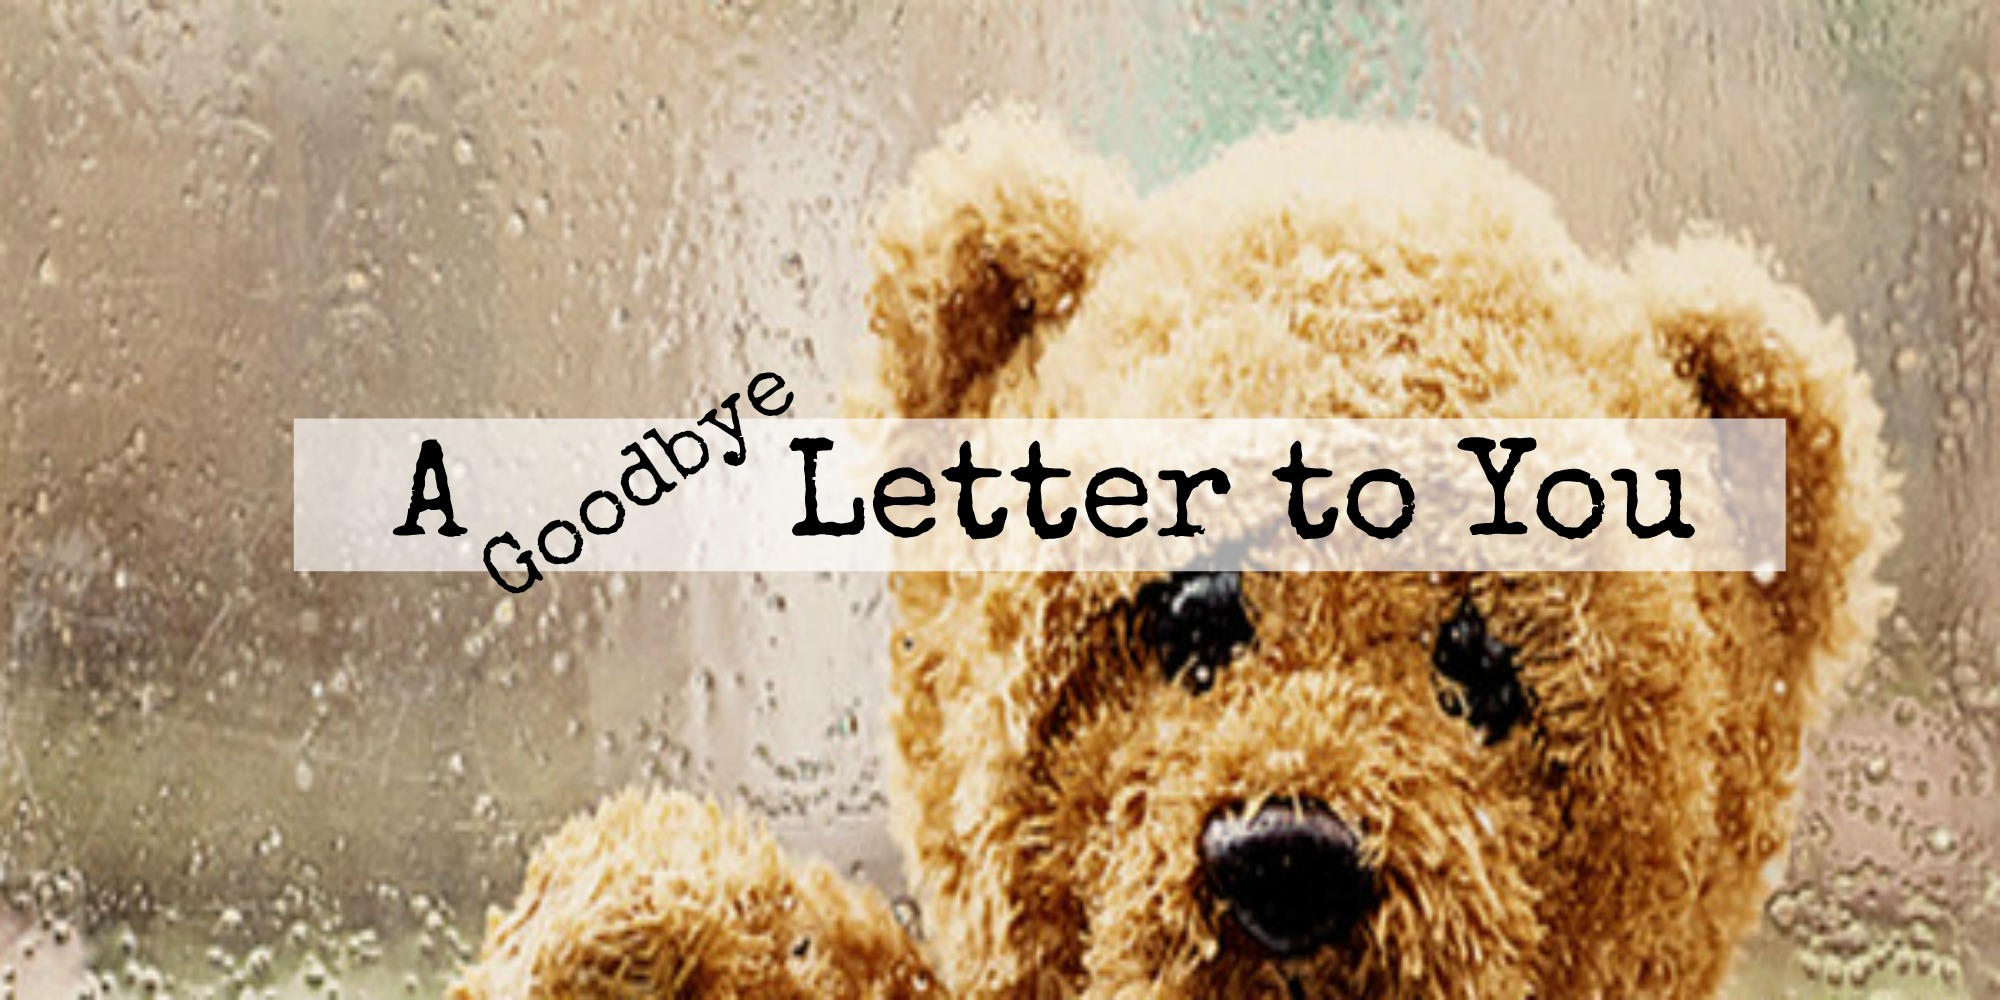 A goodbye letter to you